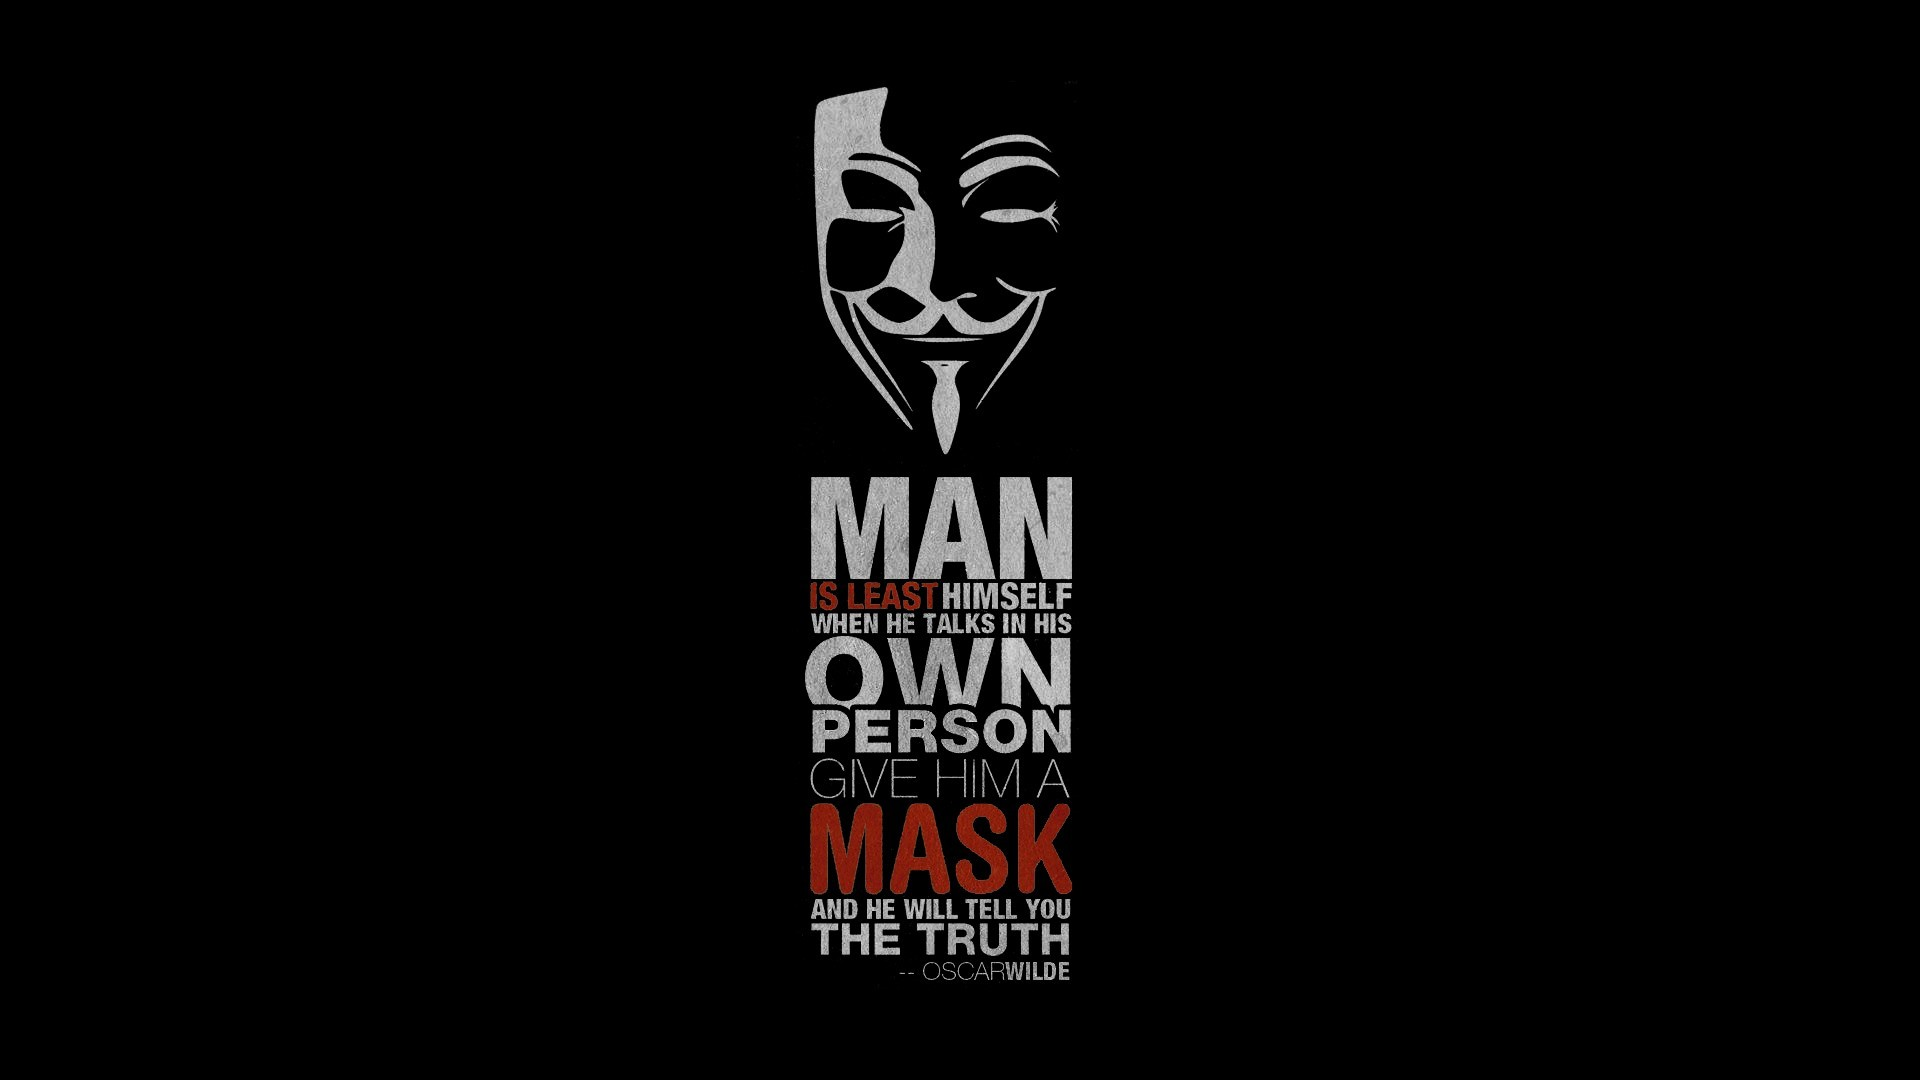 Typography Quotes Wallpaper Anonymus Hacker Quote Hd Computer 4k Wallpapers Images